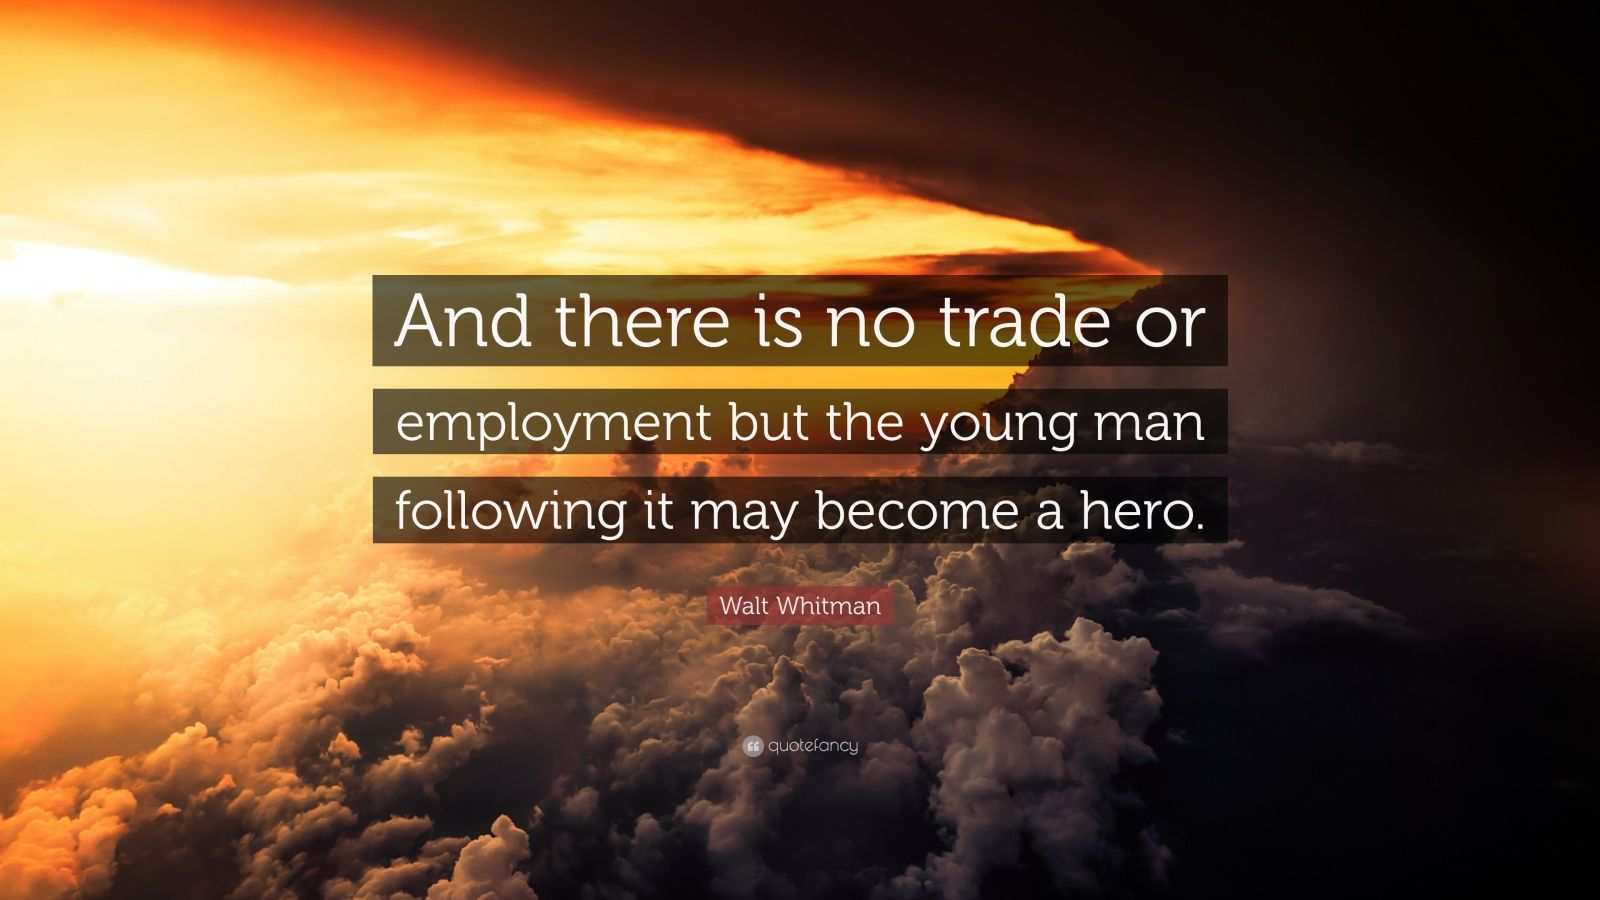 """Walt Whitman Quote: """"And there is no trade or employment but the young man following it may become a hero."""""""